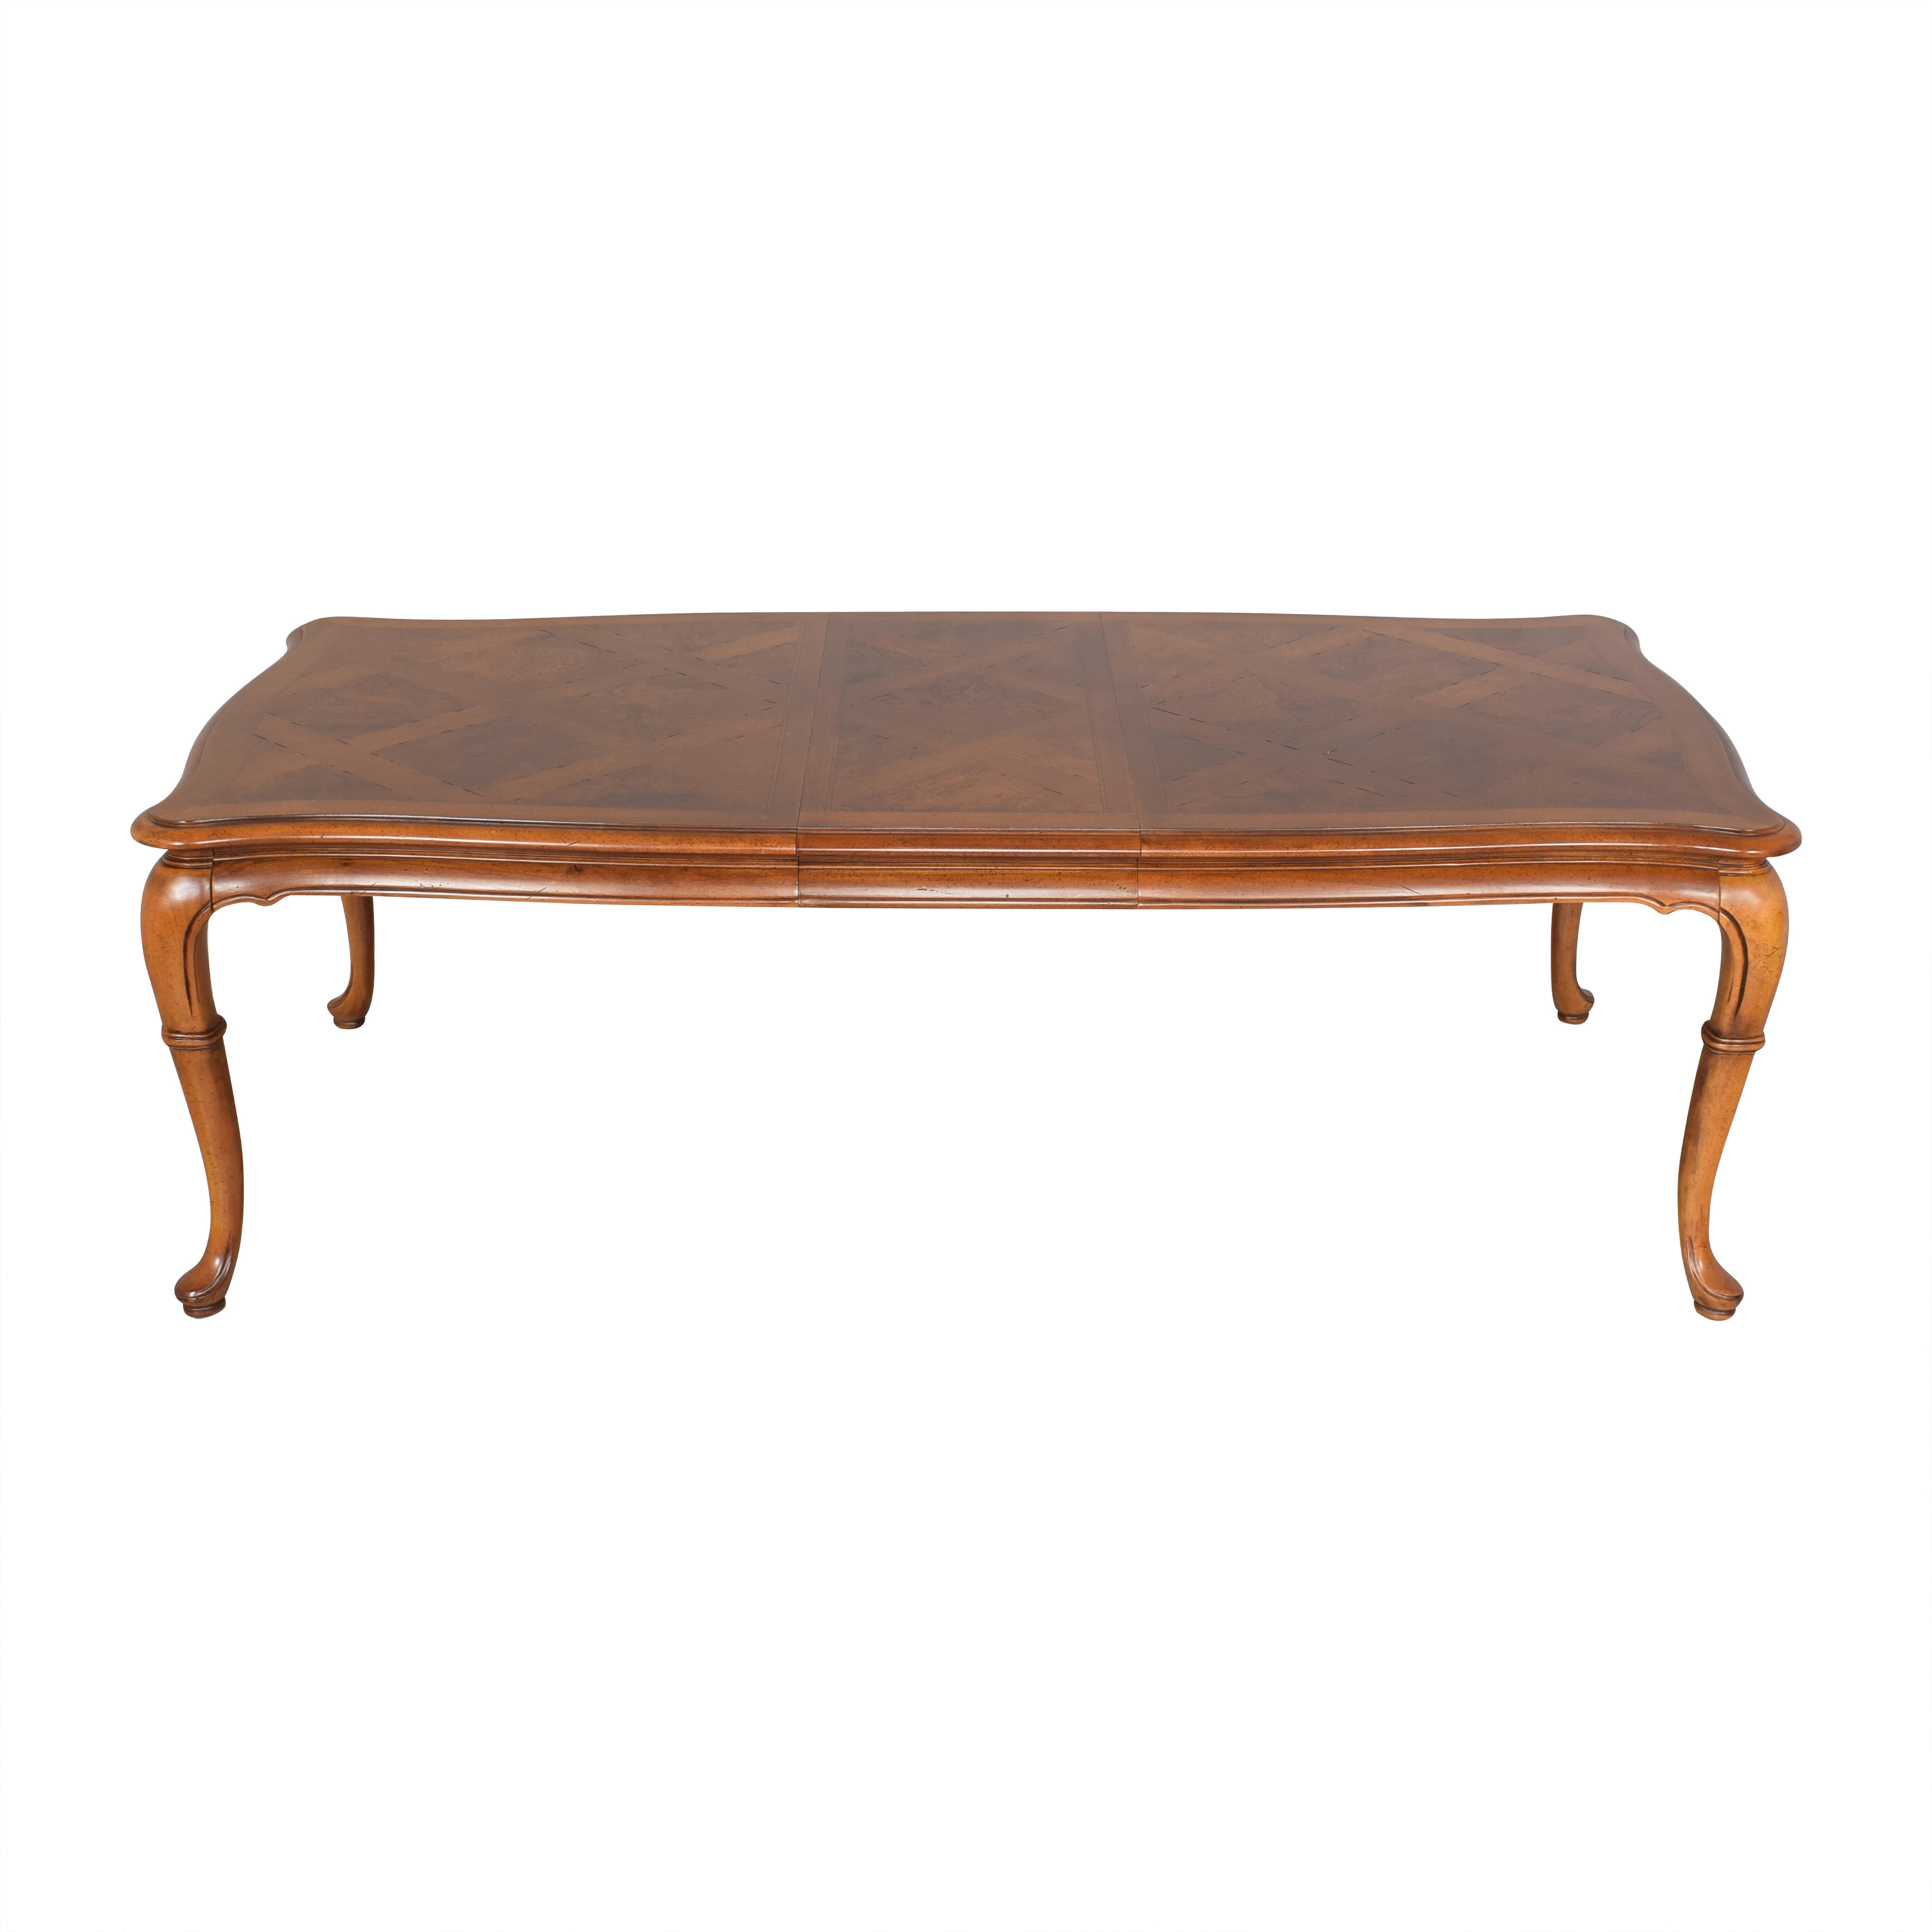 buy Thomasville Thomasville Parquet Top Extendable Dining Table online